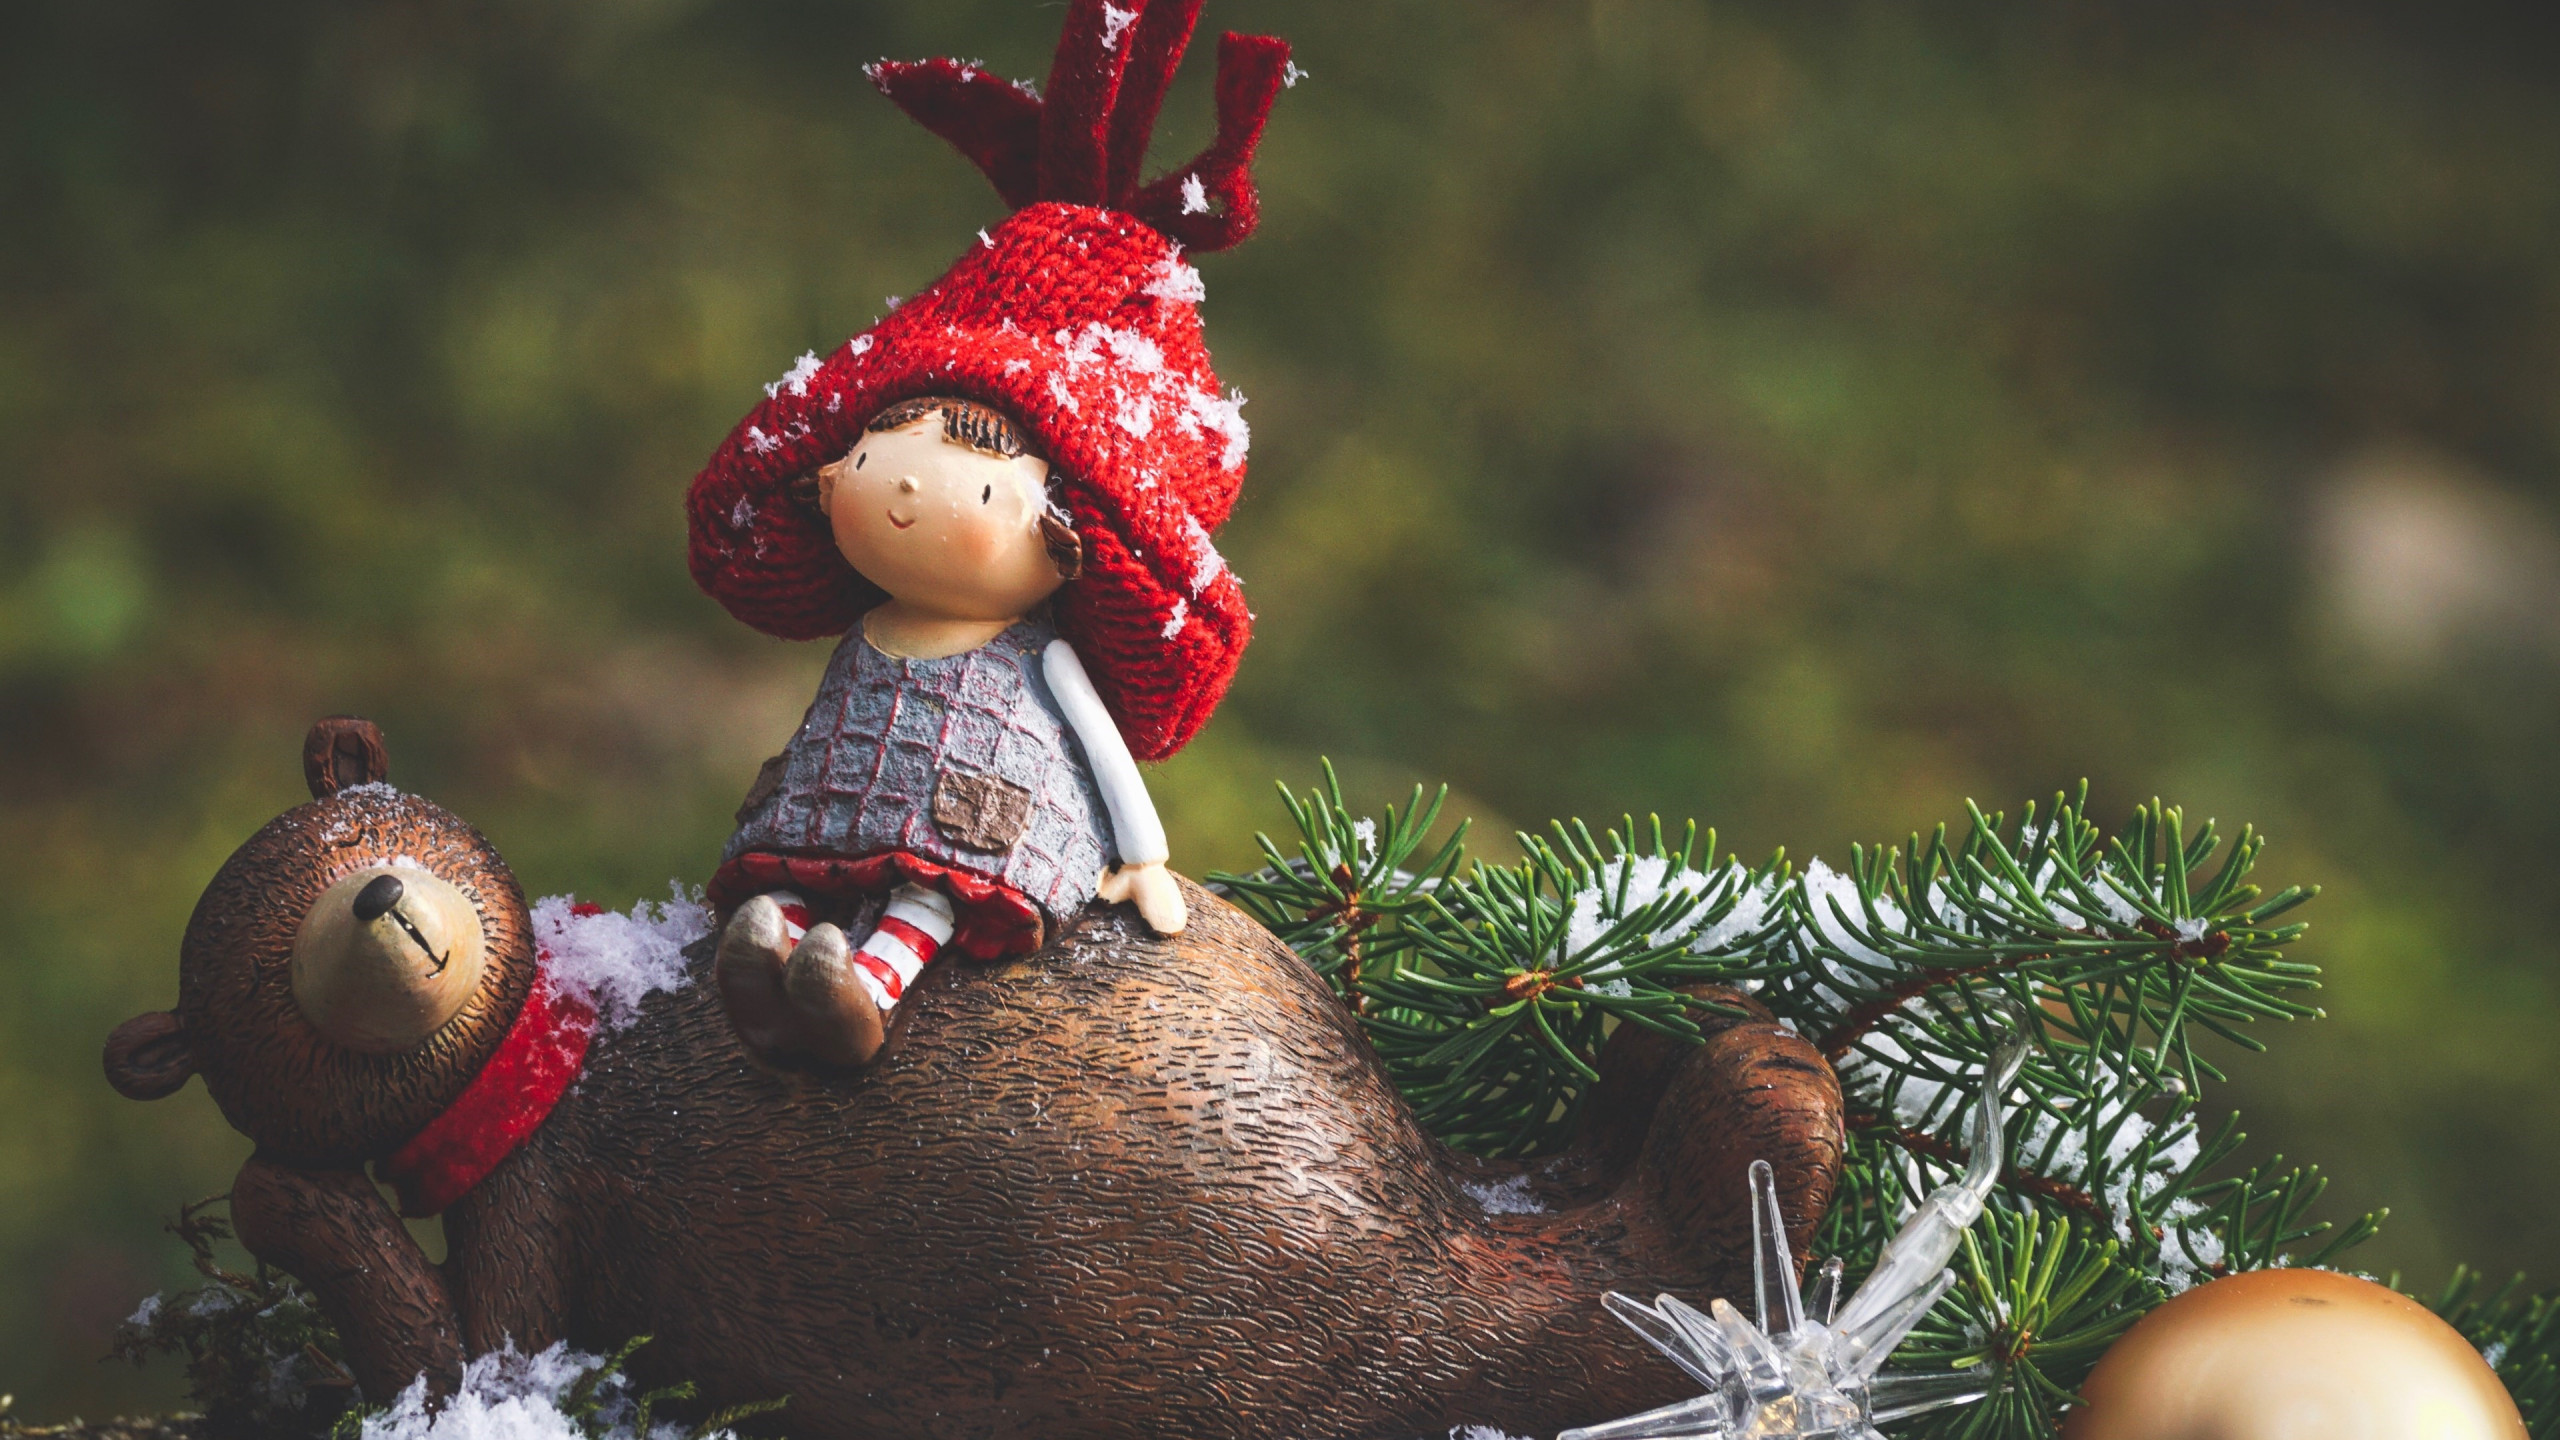 Cute Christmas decoration | 2560x1440 wallpaper